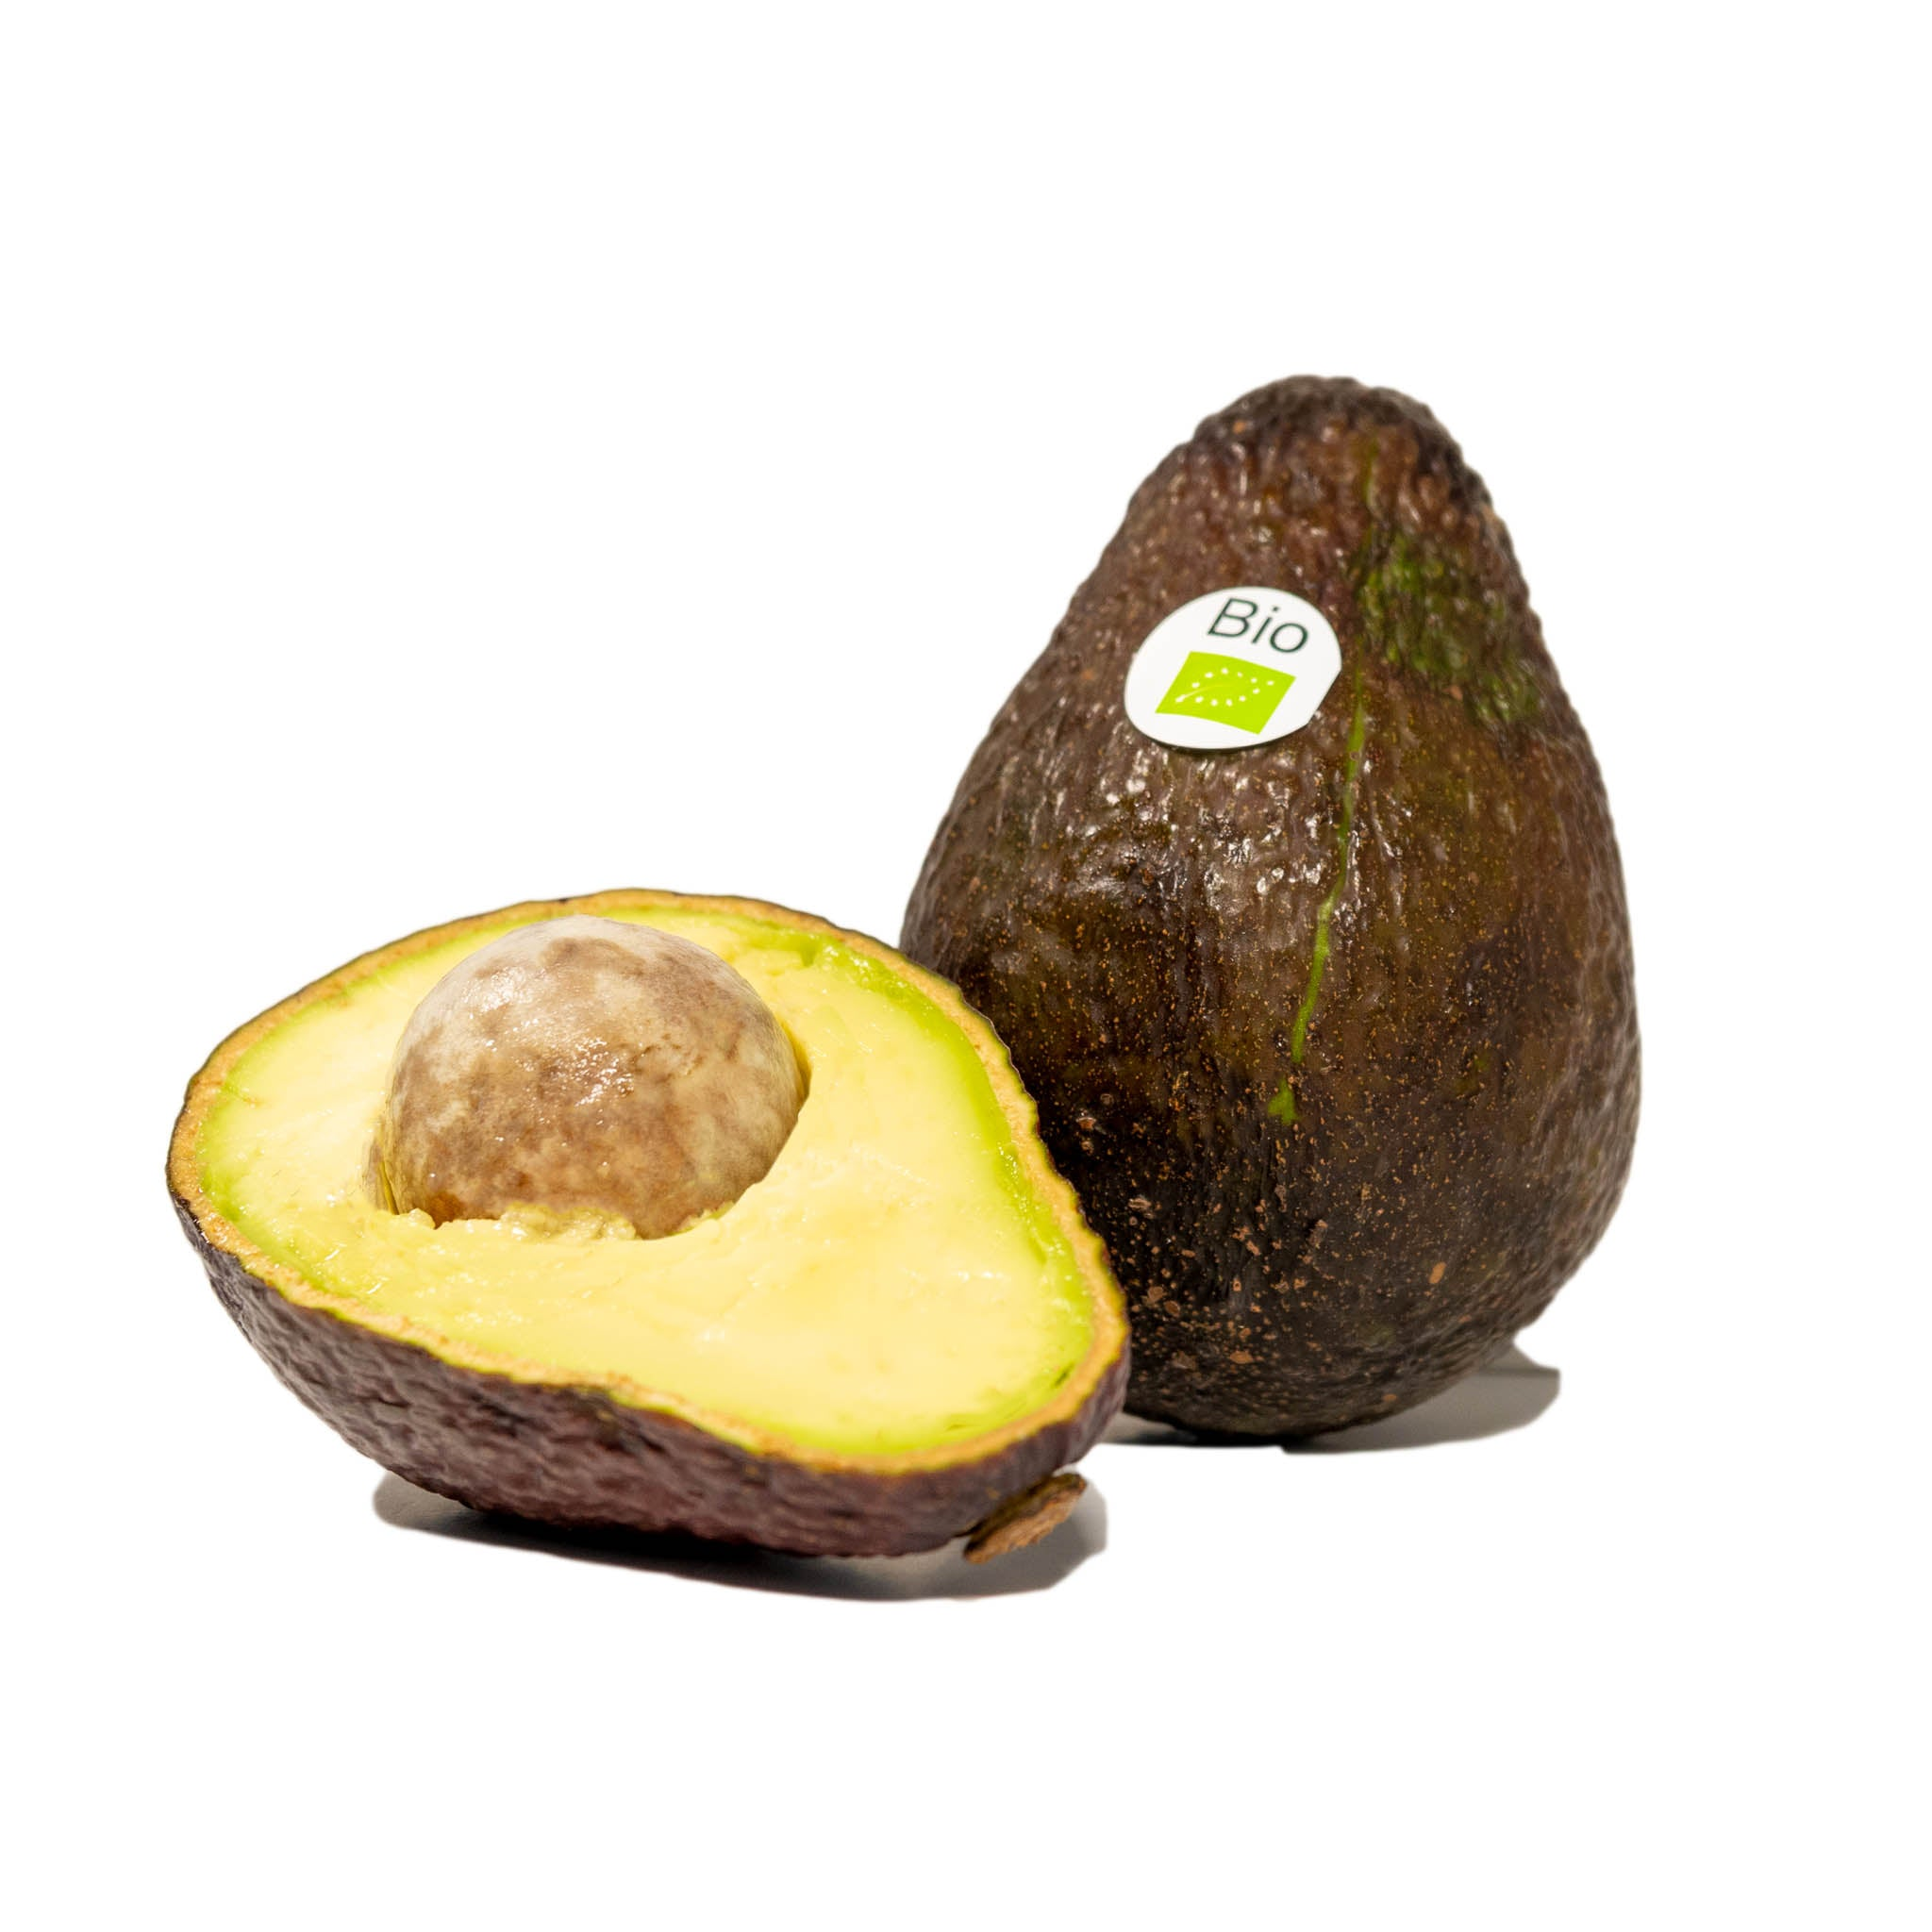 Bio Avocado - MATHY GmbH